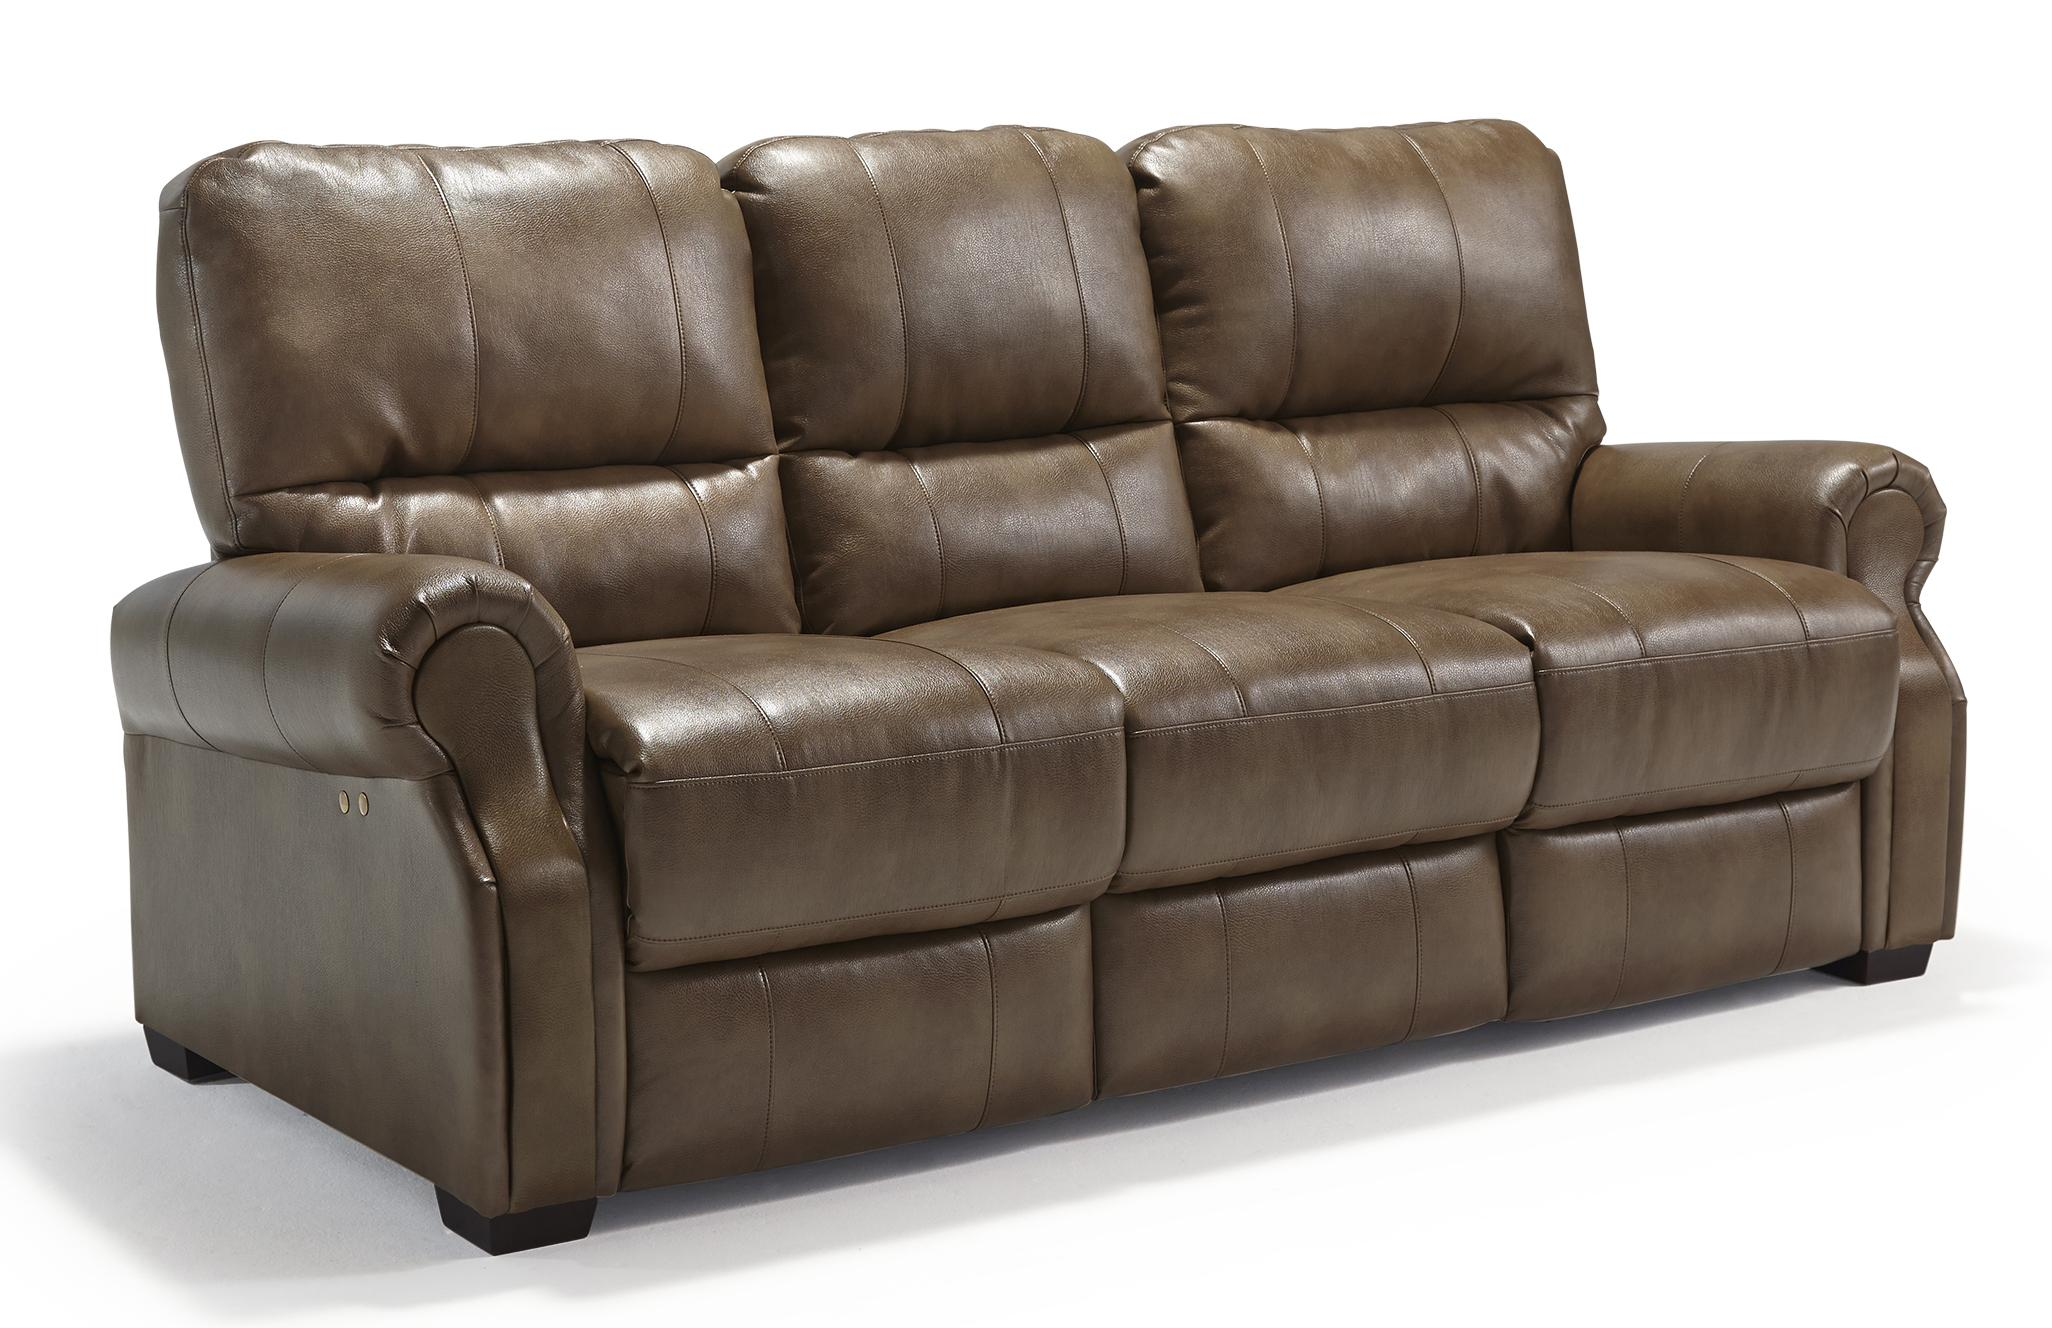 Best Home Furnishings Damien Power Reclining Sofa - Item Number: S910UP2-26766U